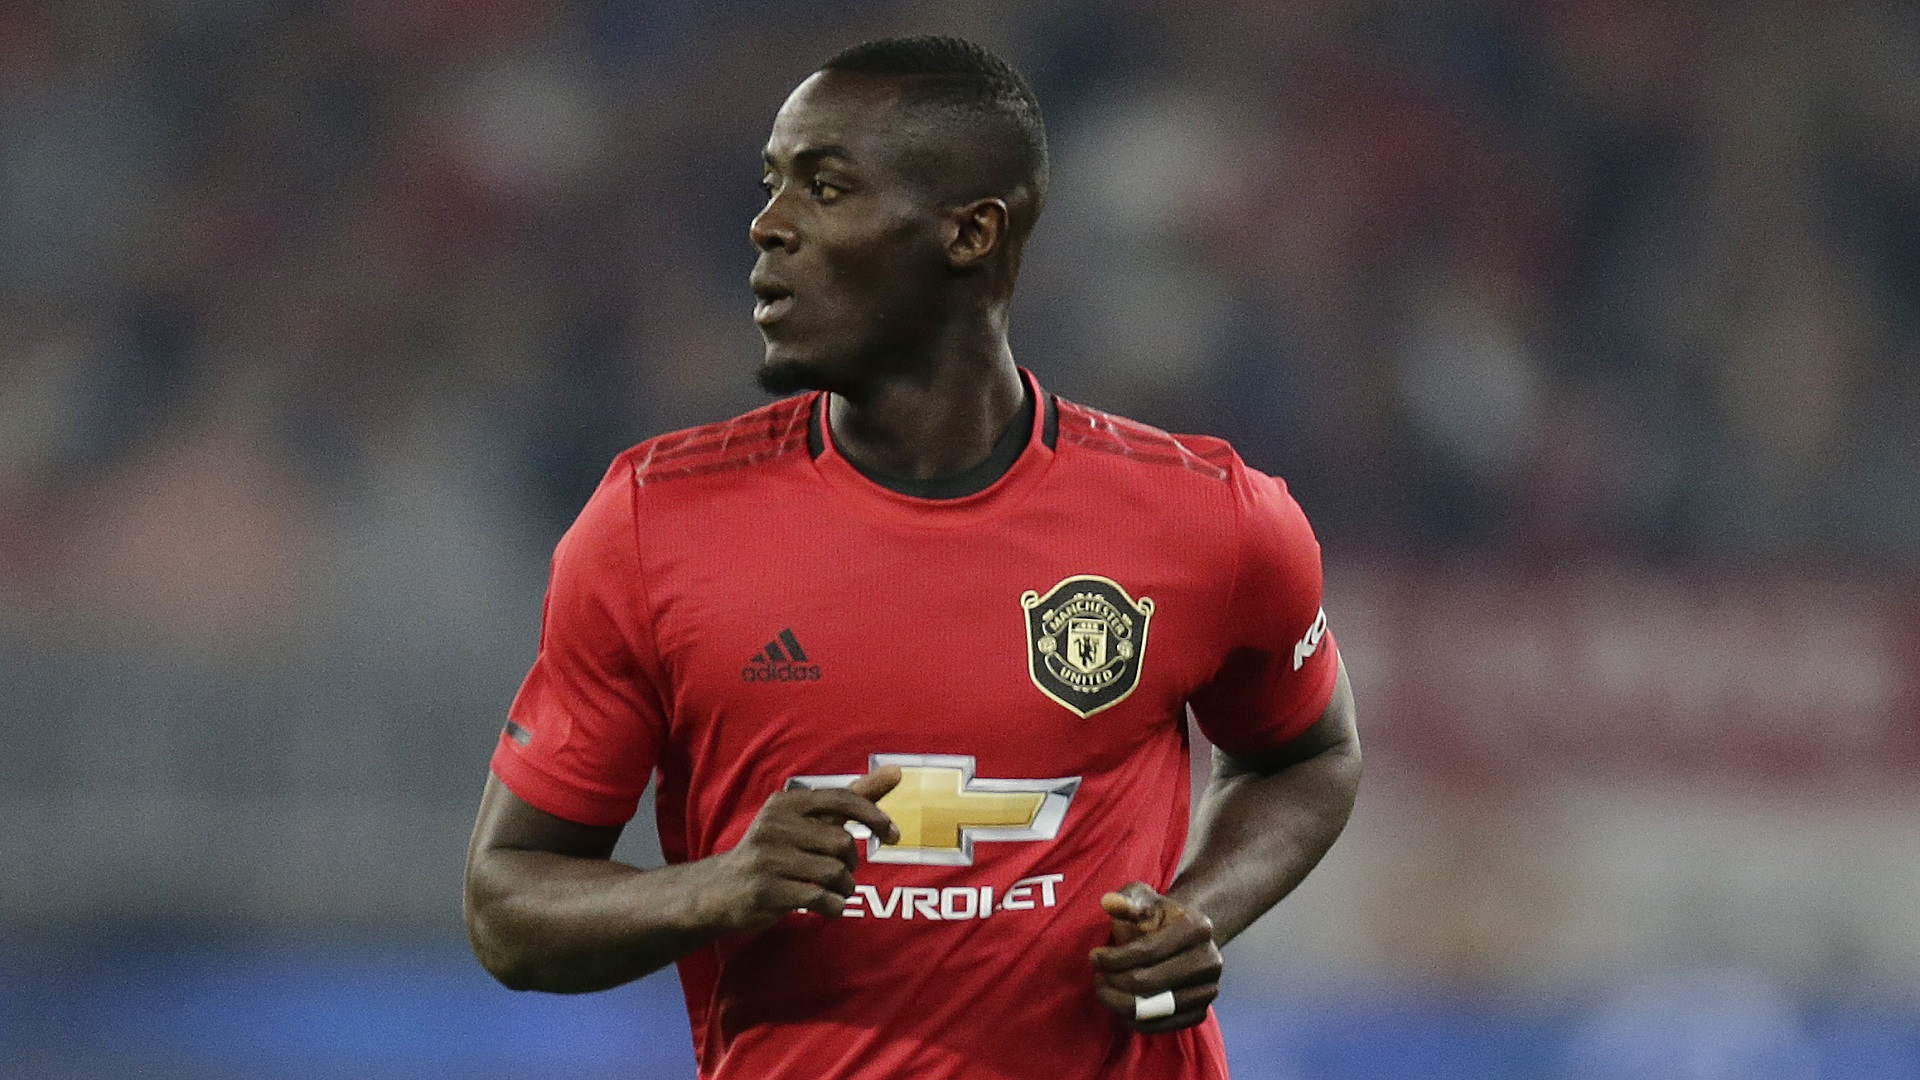 Bailly returns to Manchester United training but doubtful for West Ham game